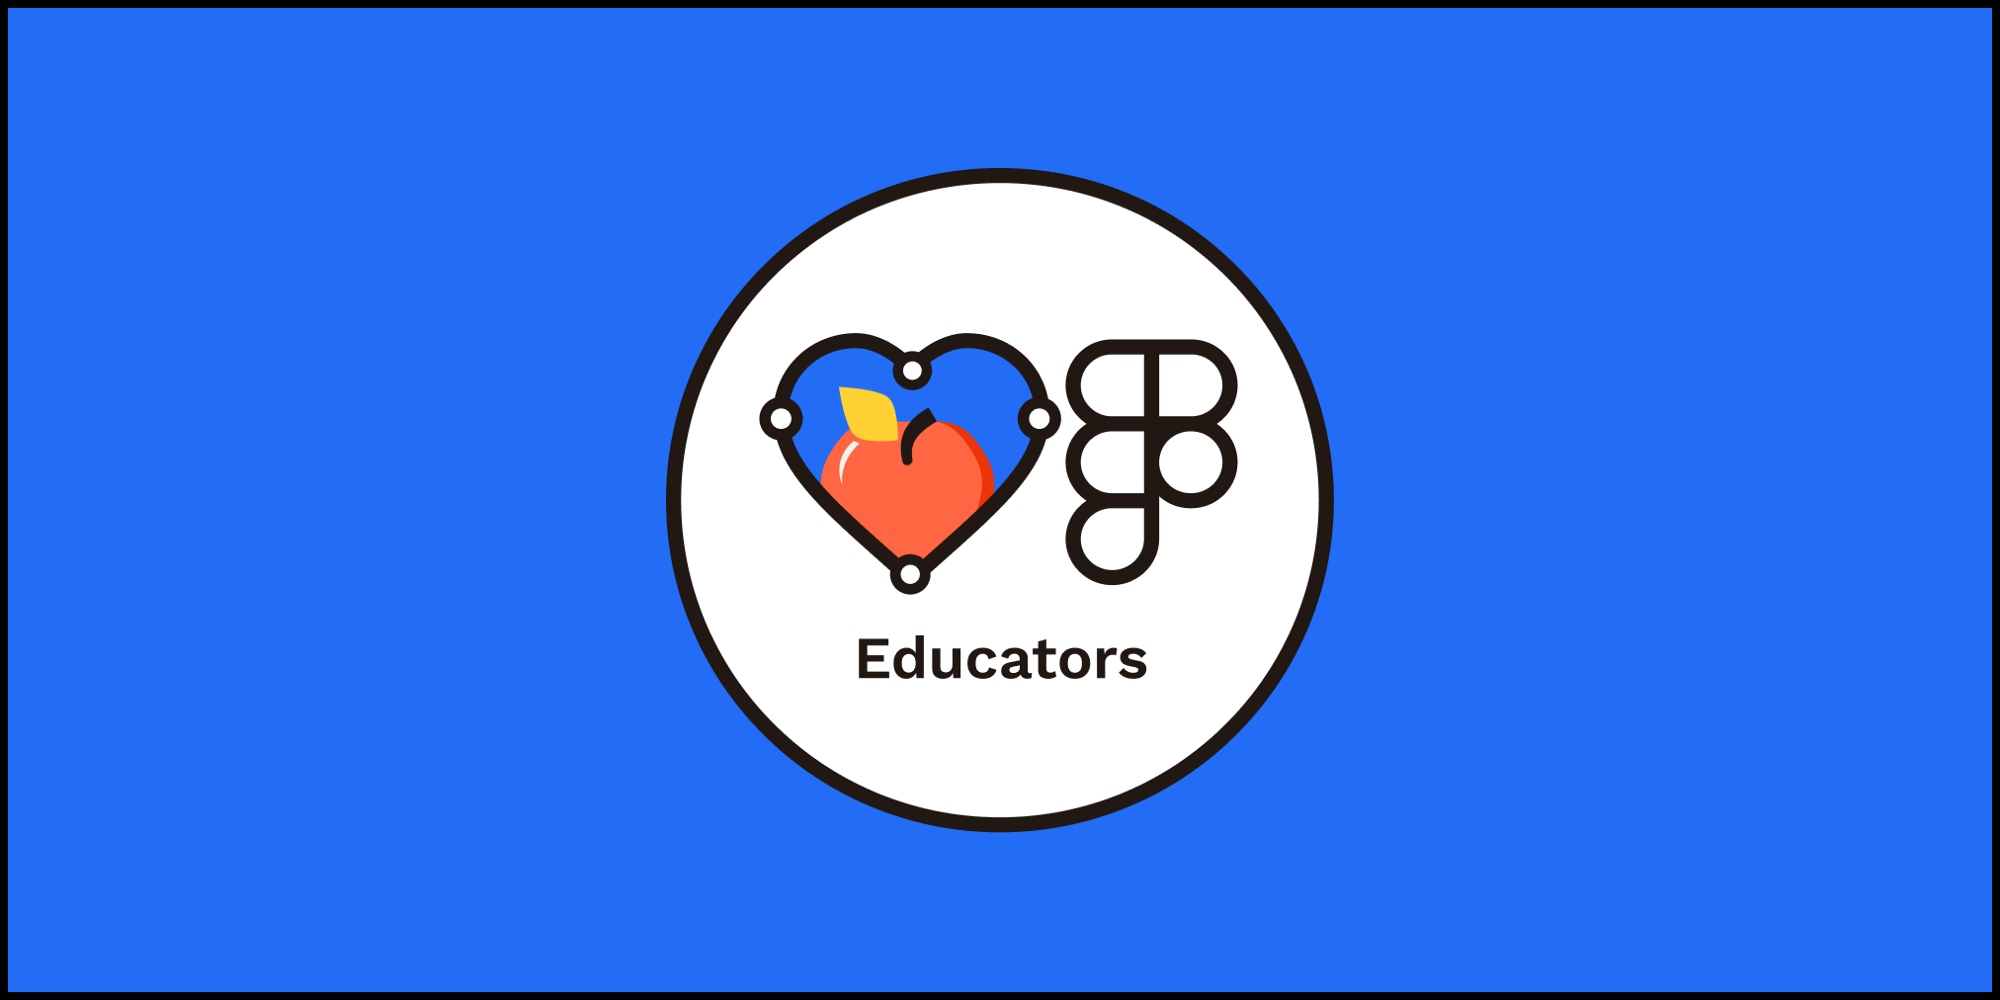 Friends of Figma, Educators